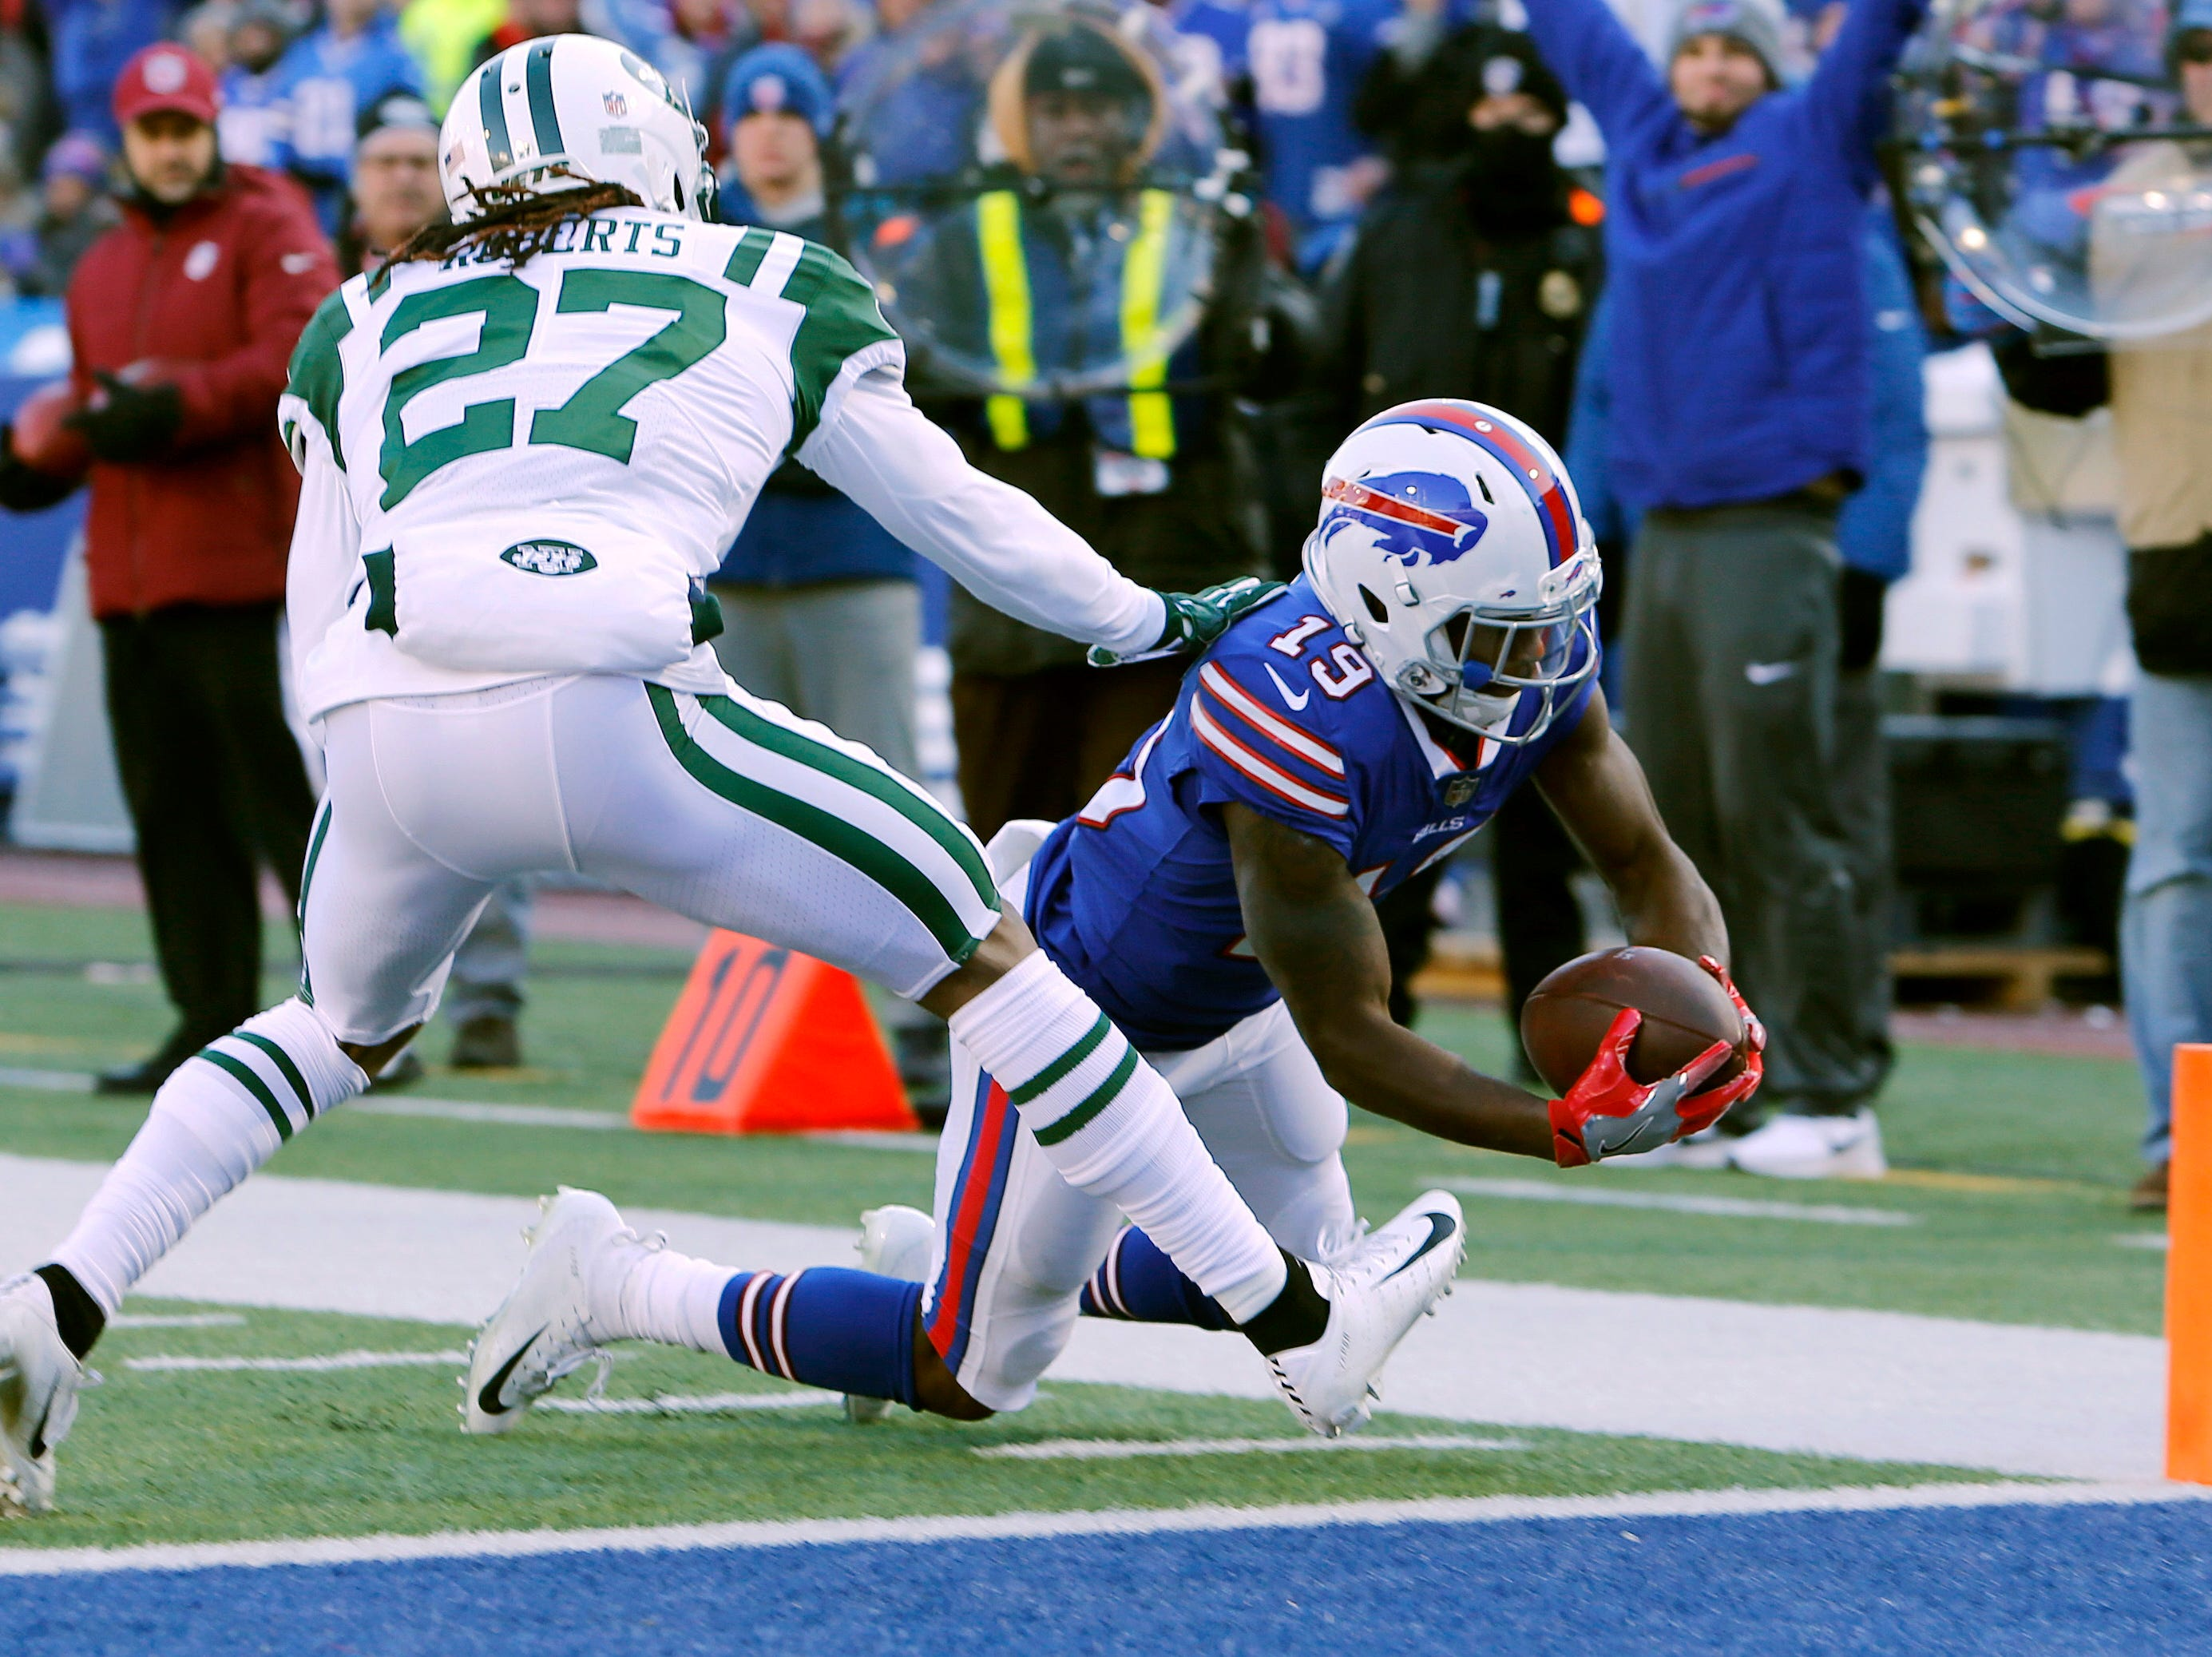 Buffalo Bills wide receiver Isaiah McKenzie (19) dives past New York Jets cornerback Darryl Roberts (27) for a touchdown during the first half of an NFL football game, Sunday, Dec. 9, 2018, in Orchard Park, N.Y. (AP Photo/Jeffrey T. Barnes)